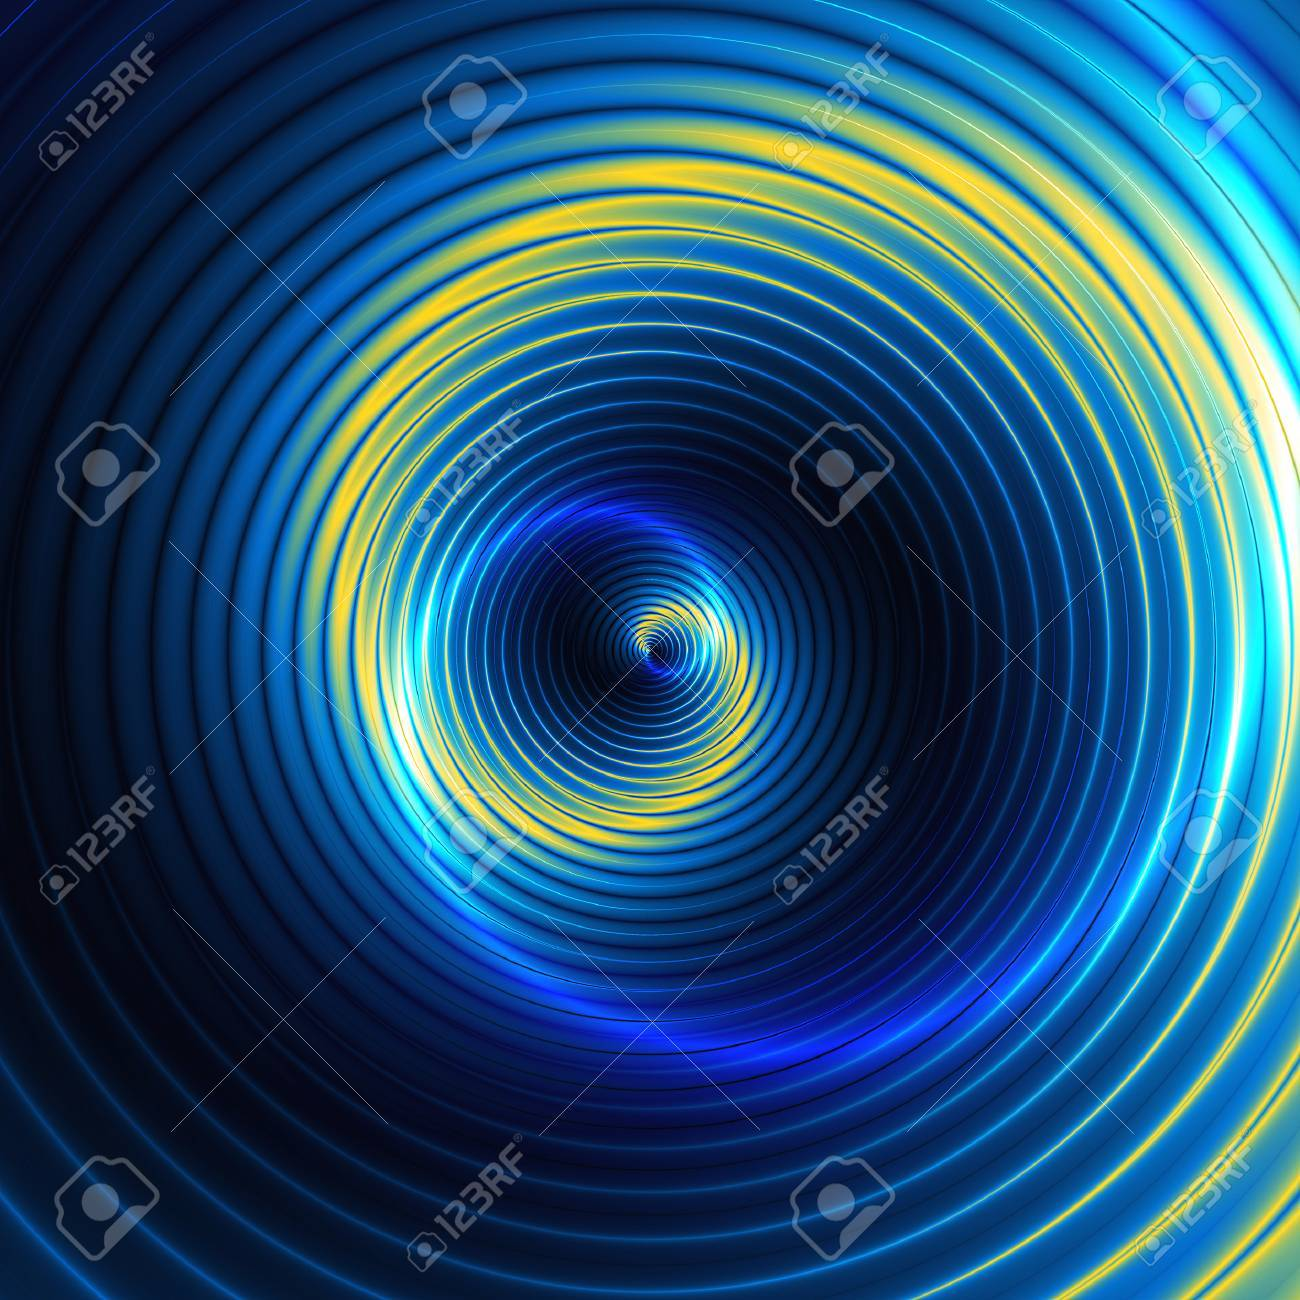 Abstract Background Of Swirling Concentric Circles Creating An Illusion Of  Movement Stock Photo   44195881